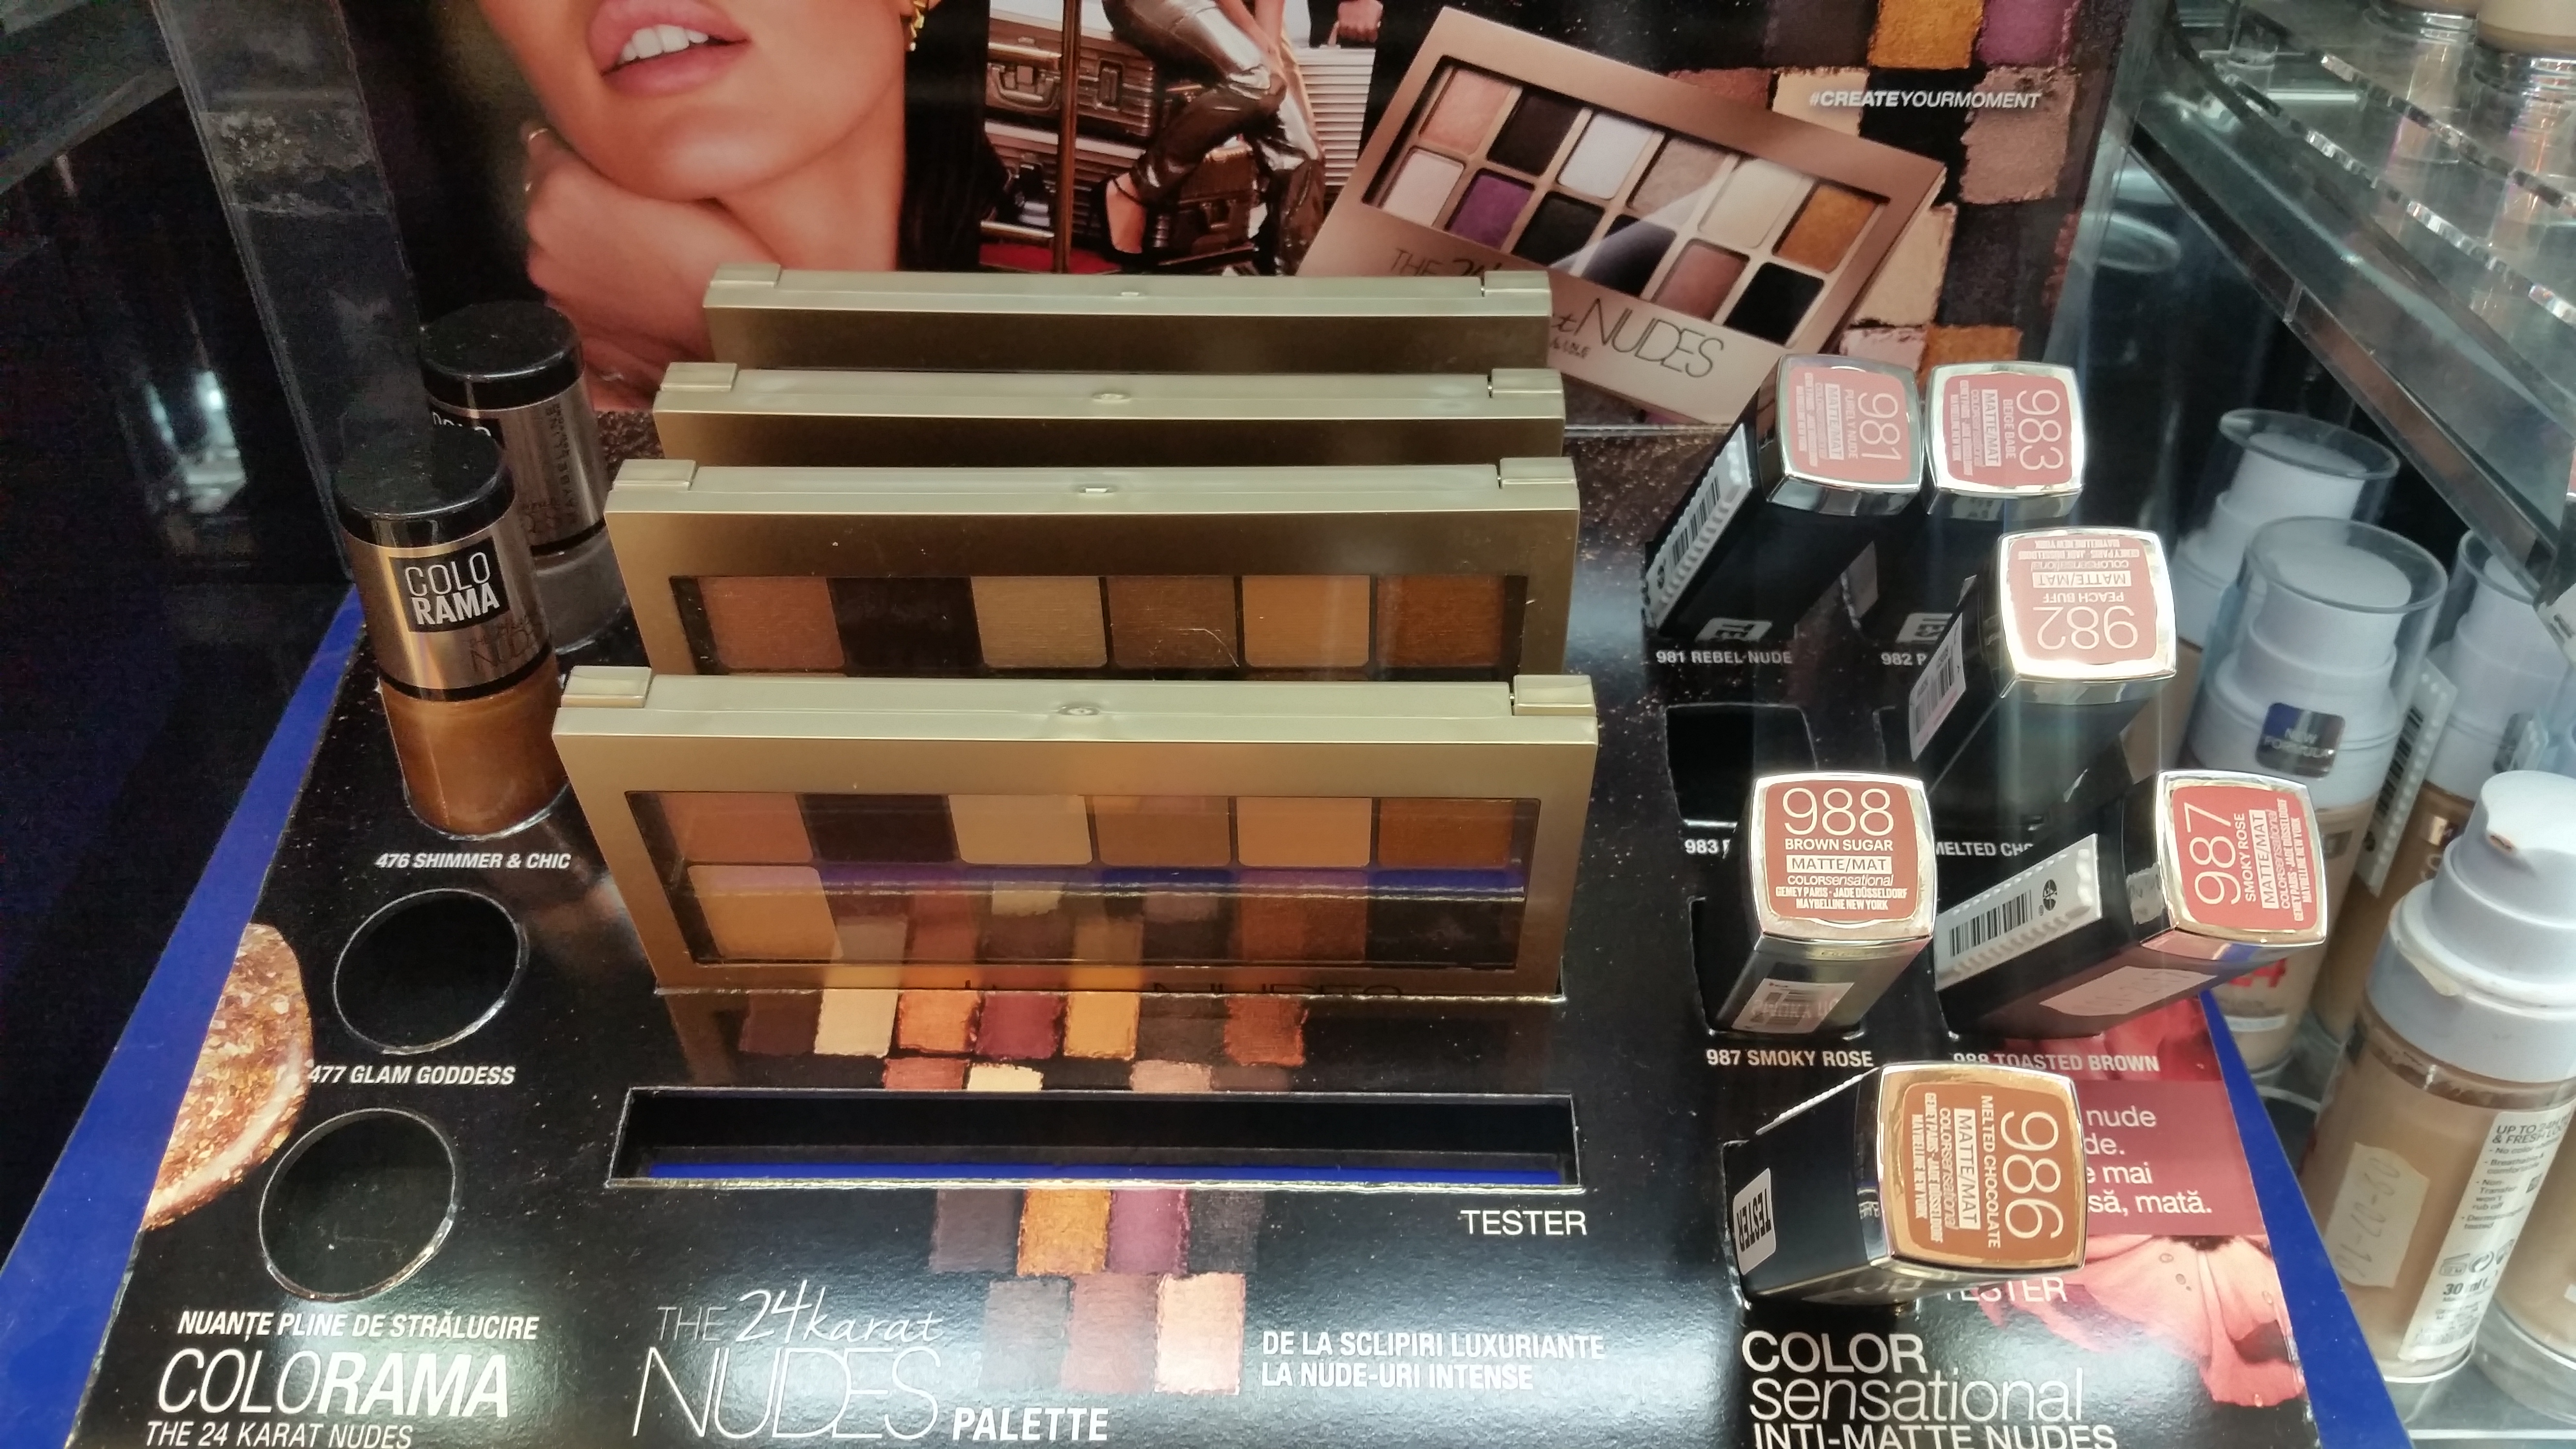 noutati-make-up-maybelline-24karate-nudes-palette-insta-matte-nudes-lipstick-beautyandatwist-january-2017